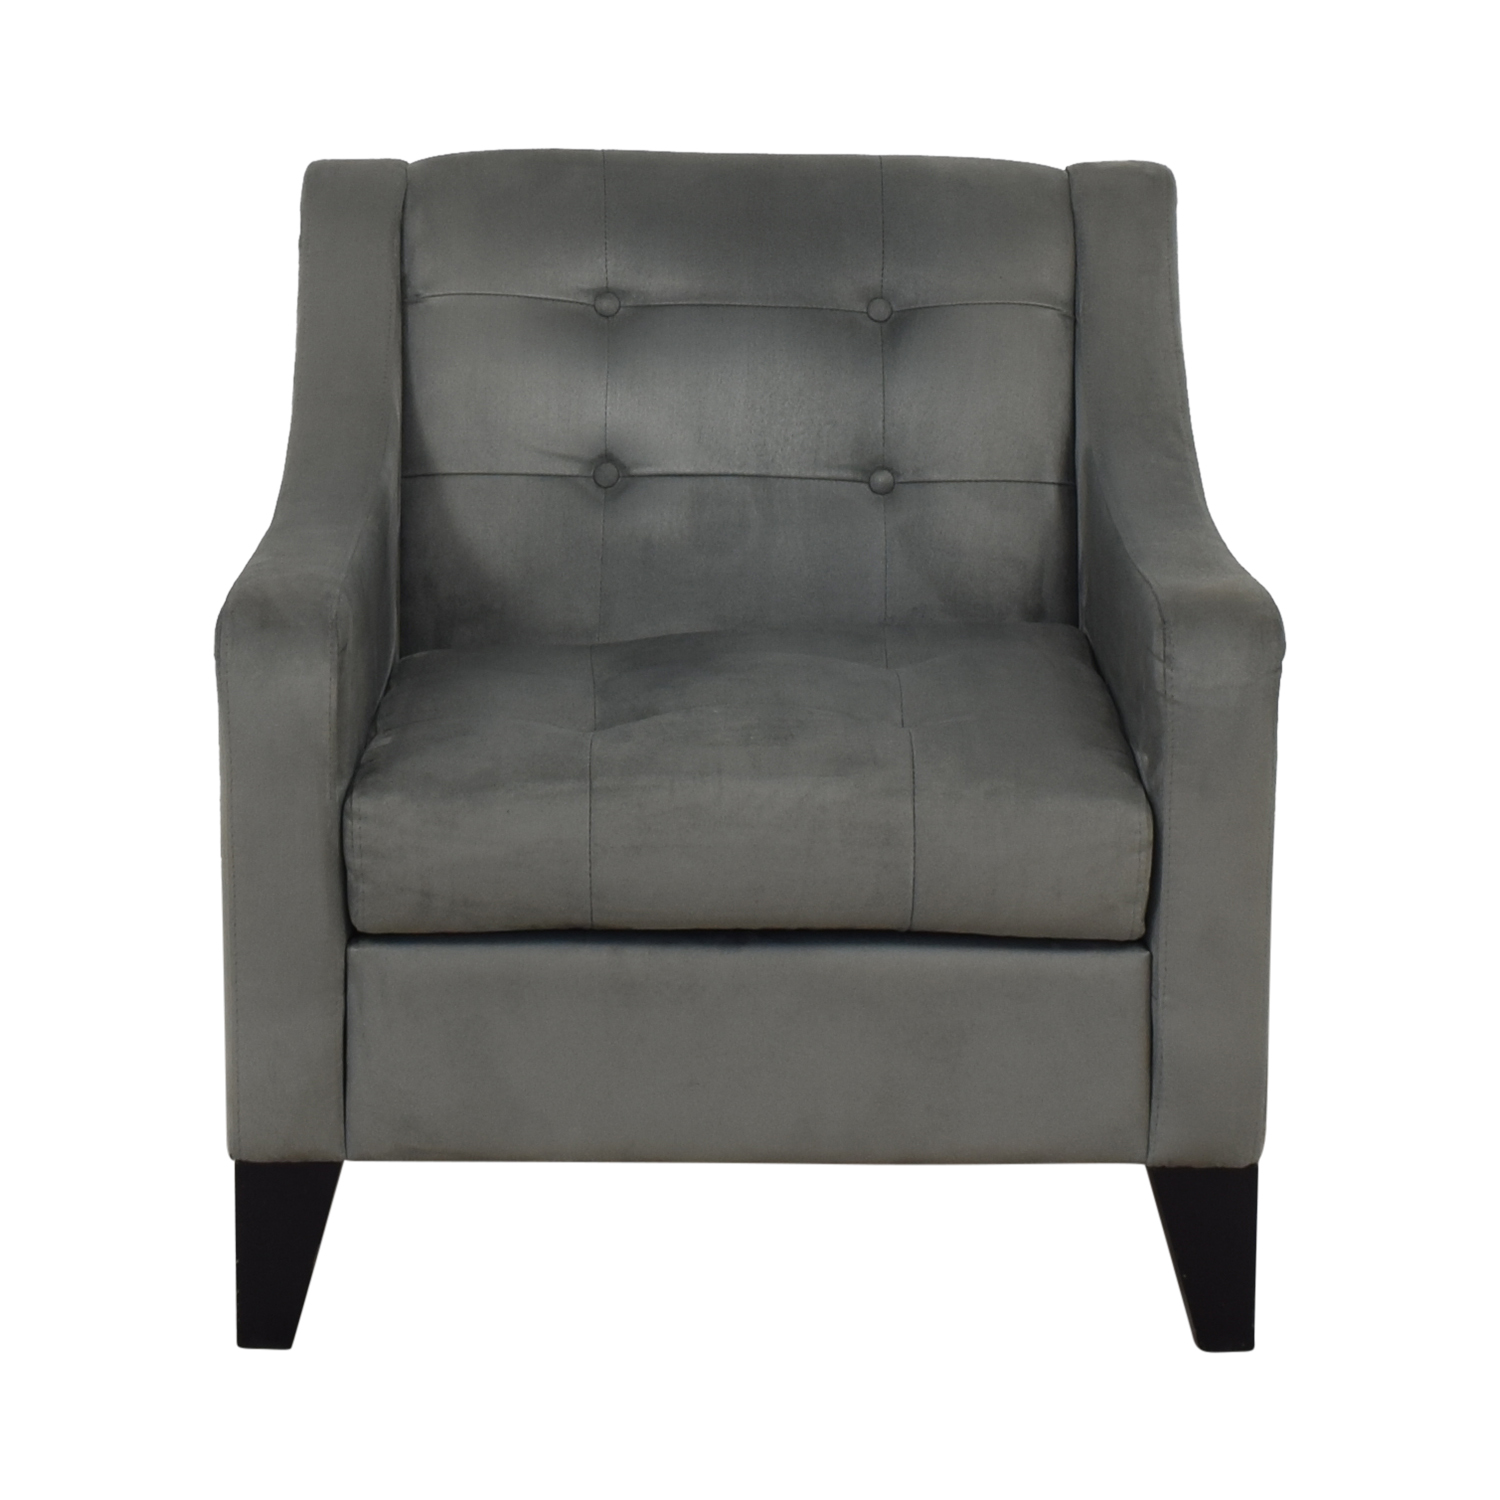 Urban Mode Urban Mode Microfiber Suede Armchair Accent Chairs